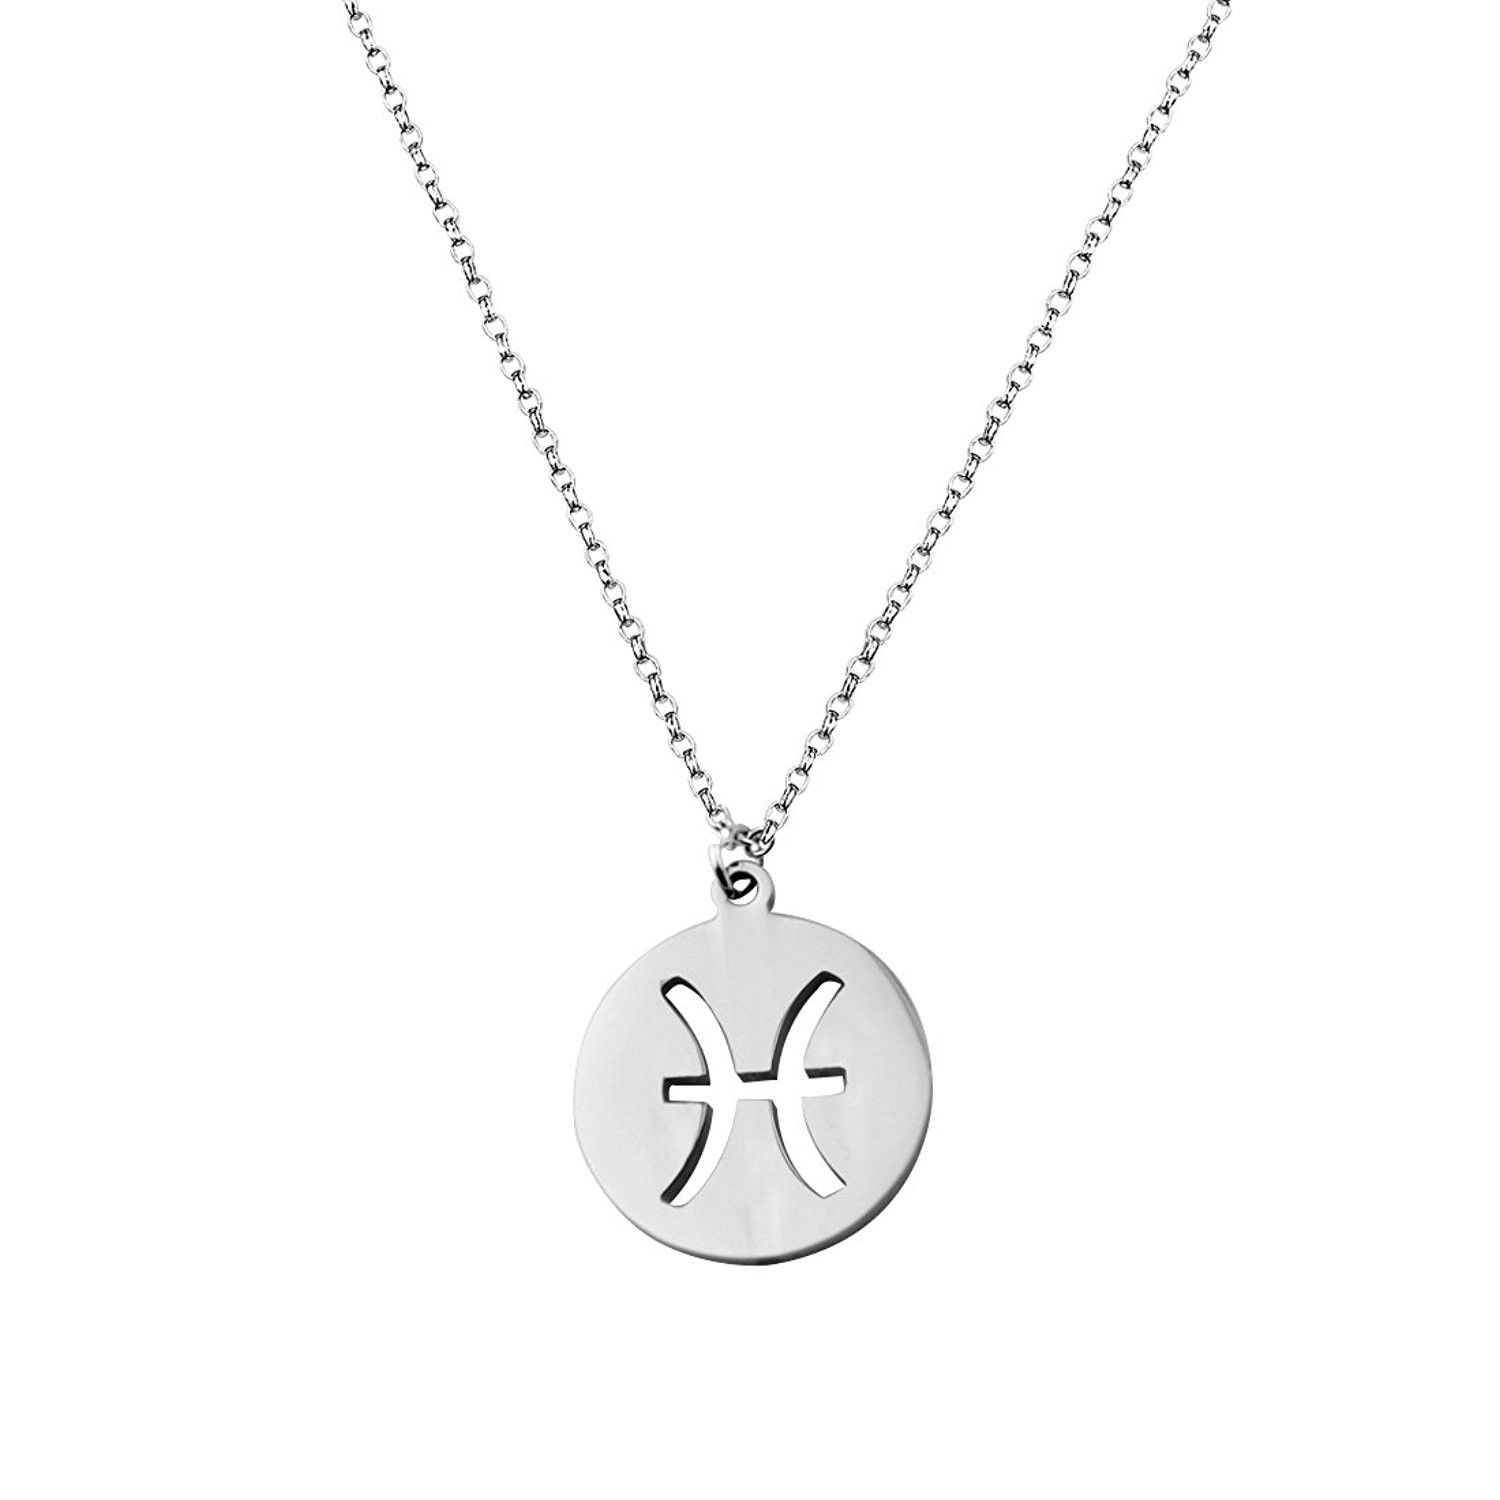 Birthday gift zodiac signs cut out disc necklace horoscope zodiac